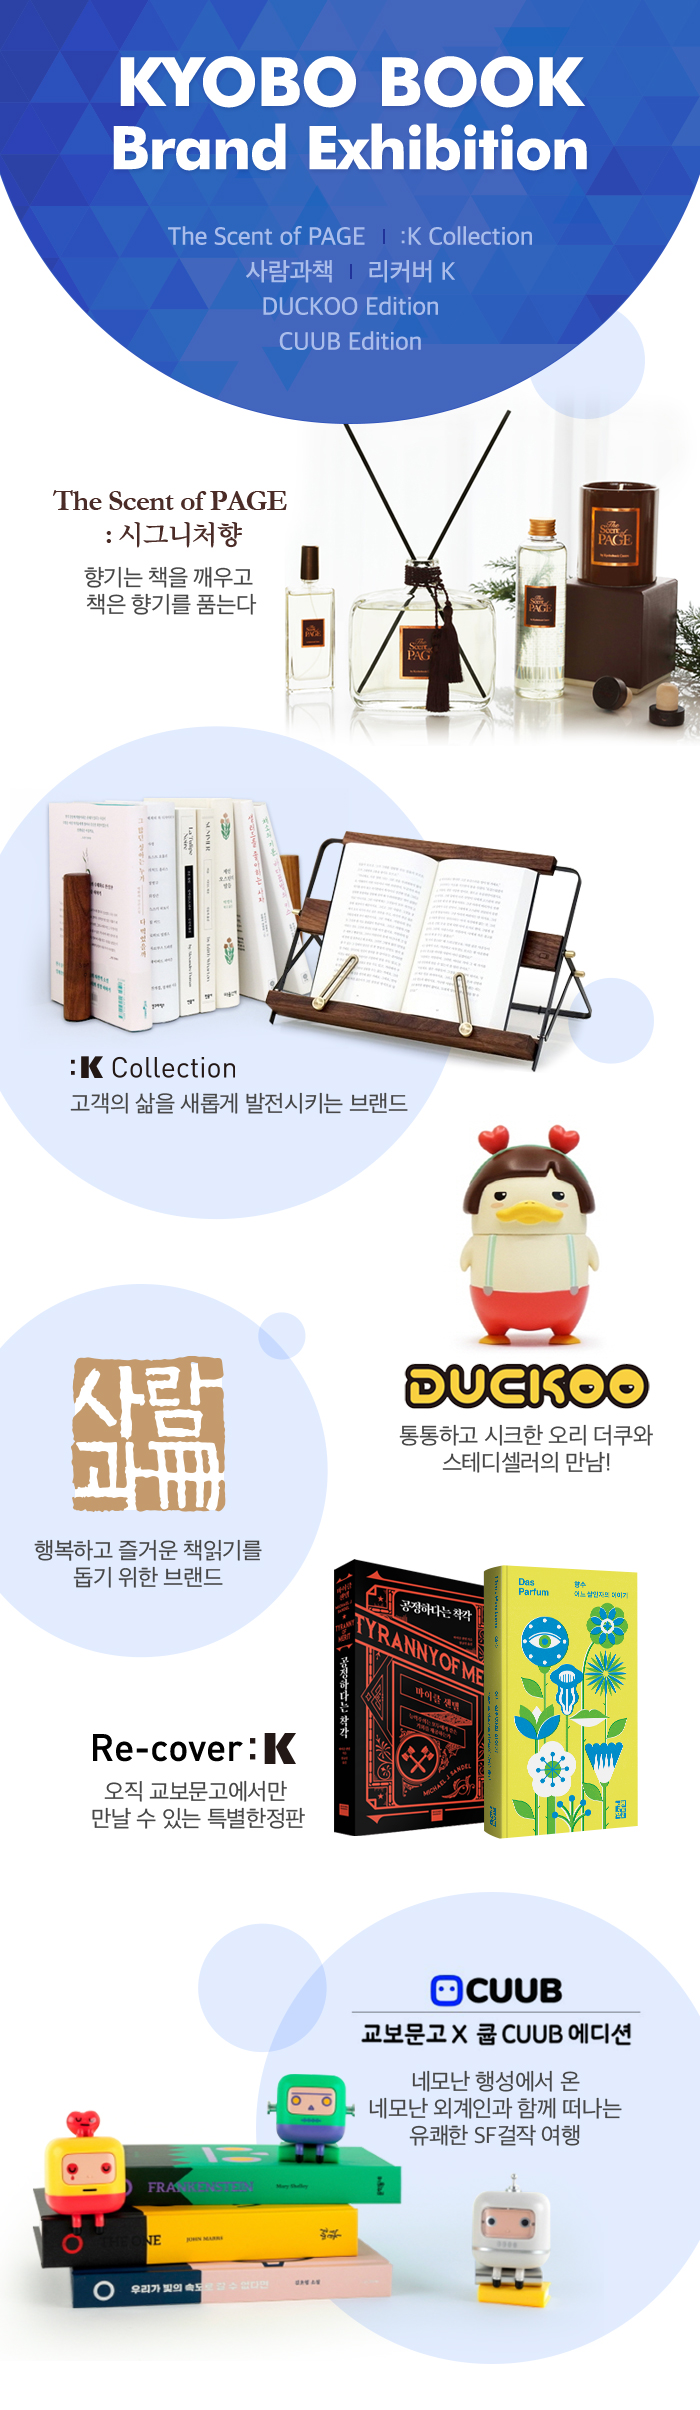 KYOBO BOOK Brand Exhibition -The Scent of PAGE -:K Collection -사람과책 -리커버 K -DUCKOO Edition -CUUB Edition